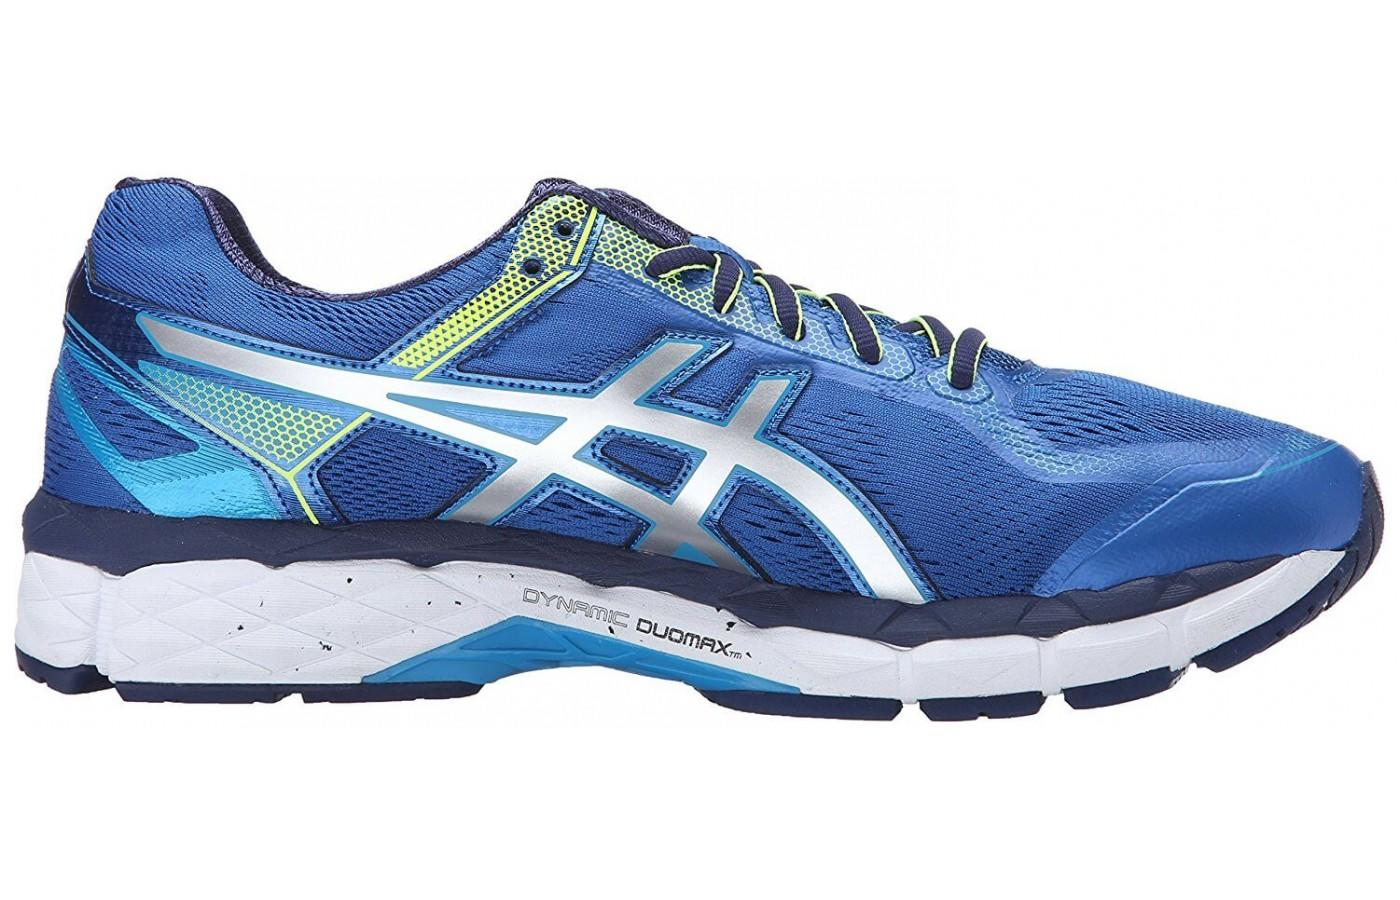 A view of the interior side of the ASICS GEL-Surveyor 5.